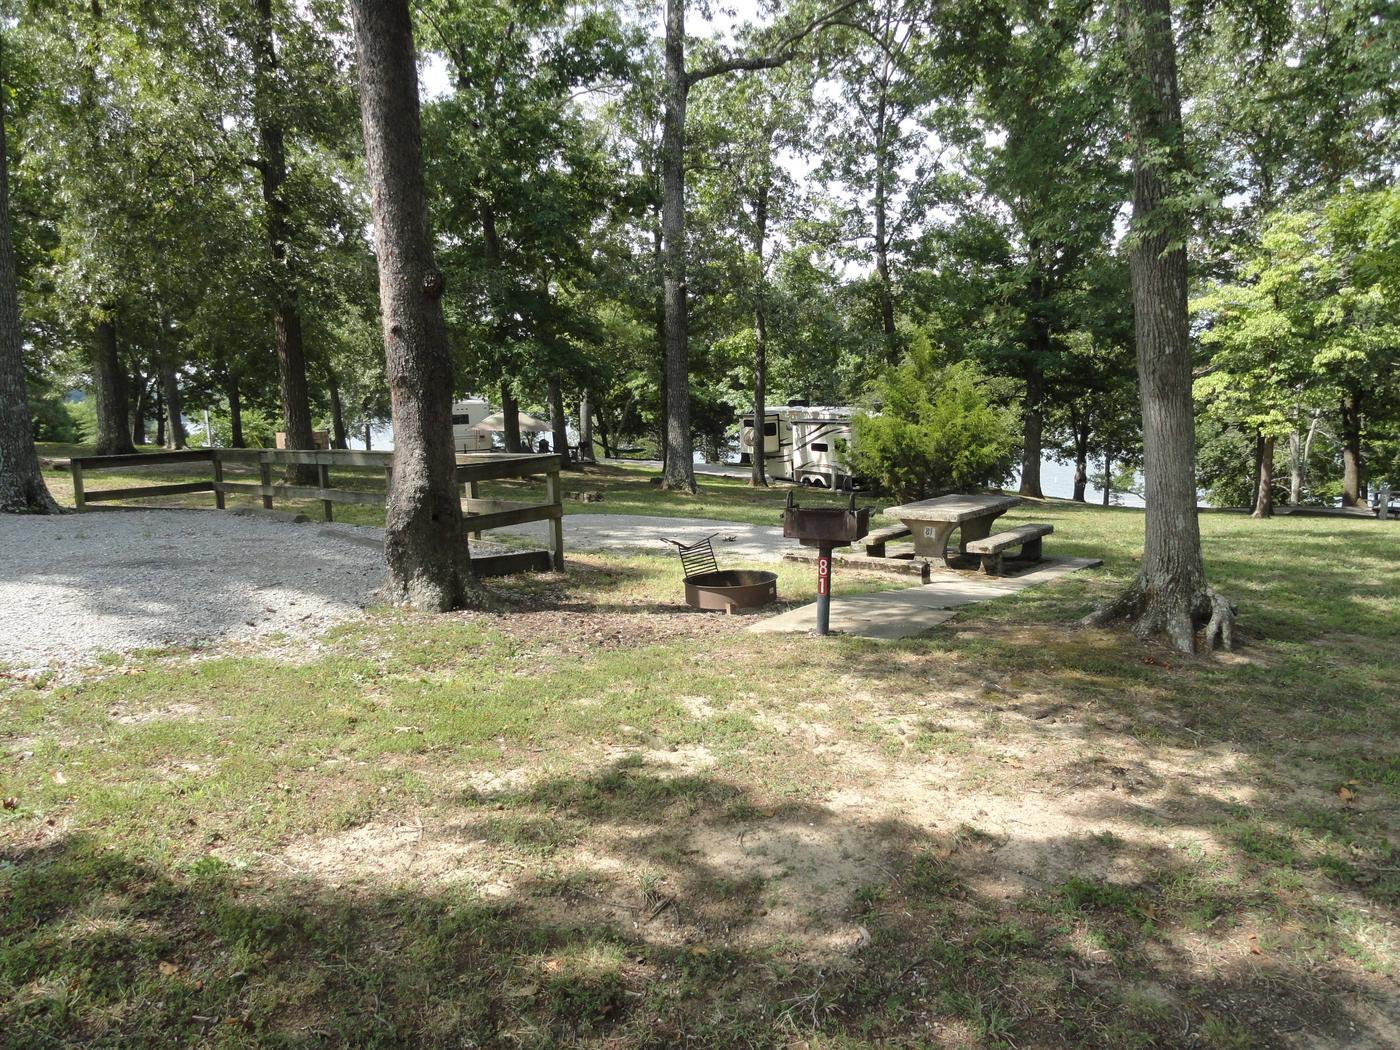 WILLOW GROVE CAMPGROUND SITE #81